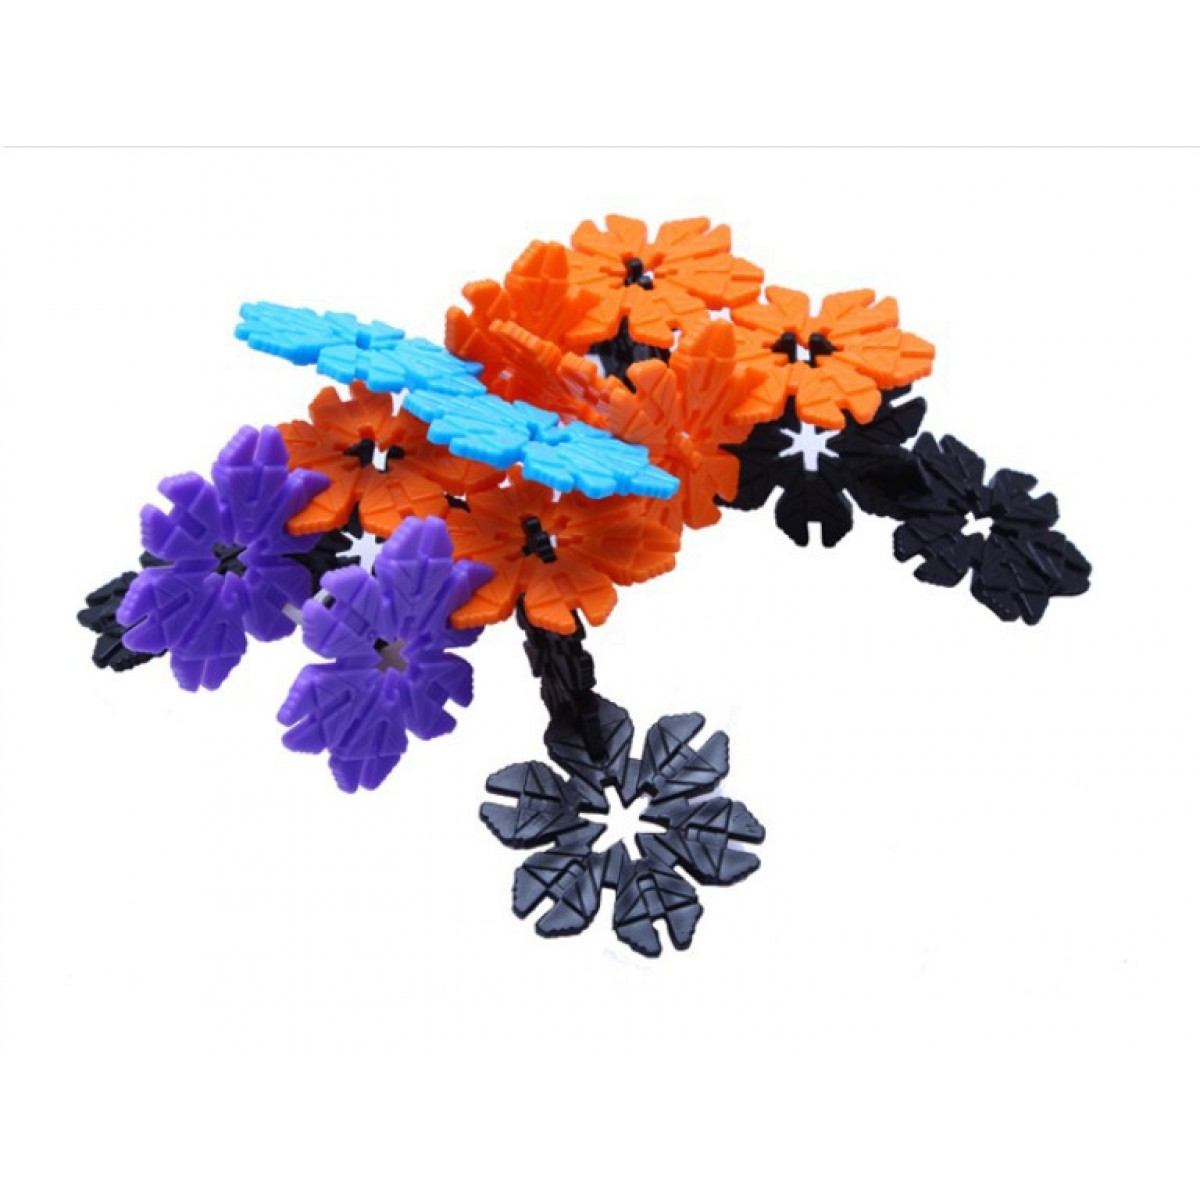 Cheap 320 Pcs Flower Building Blocks Toy Sale Online With Free